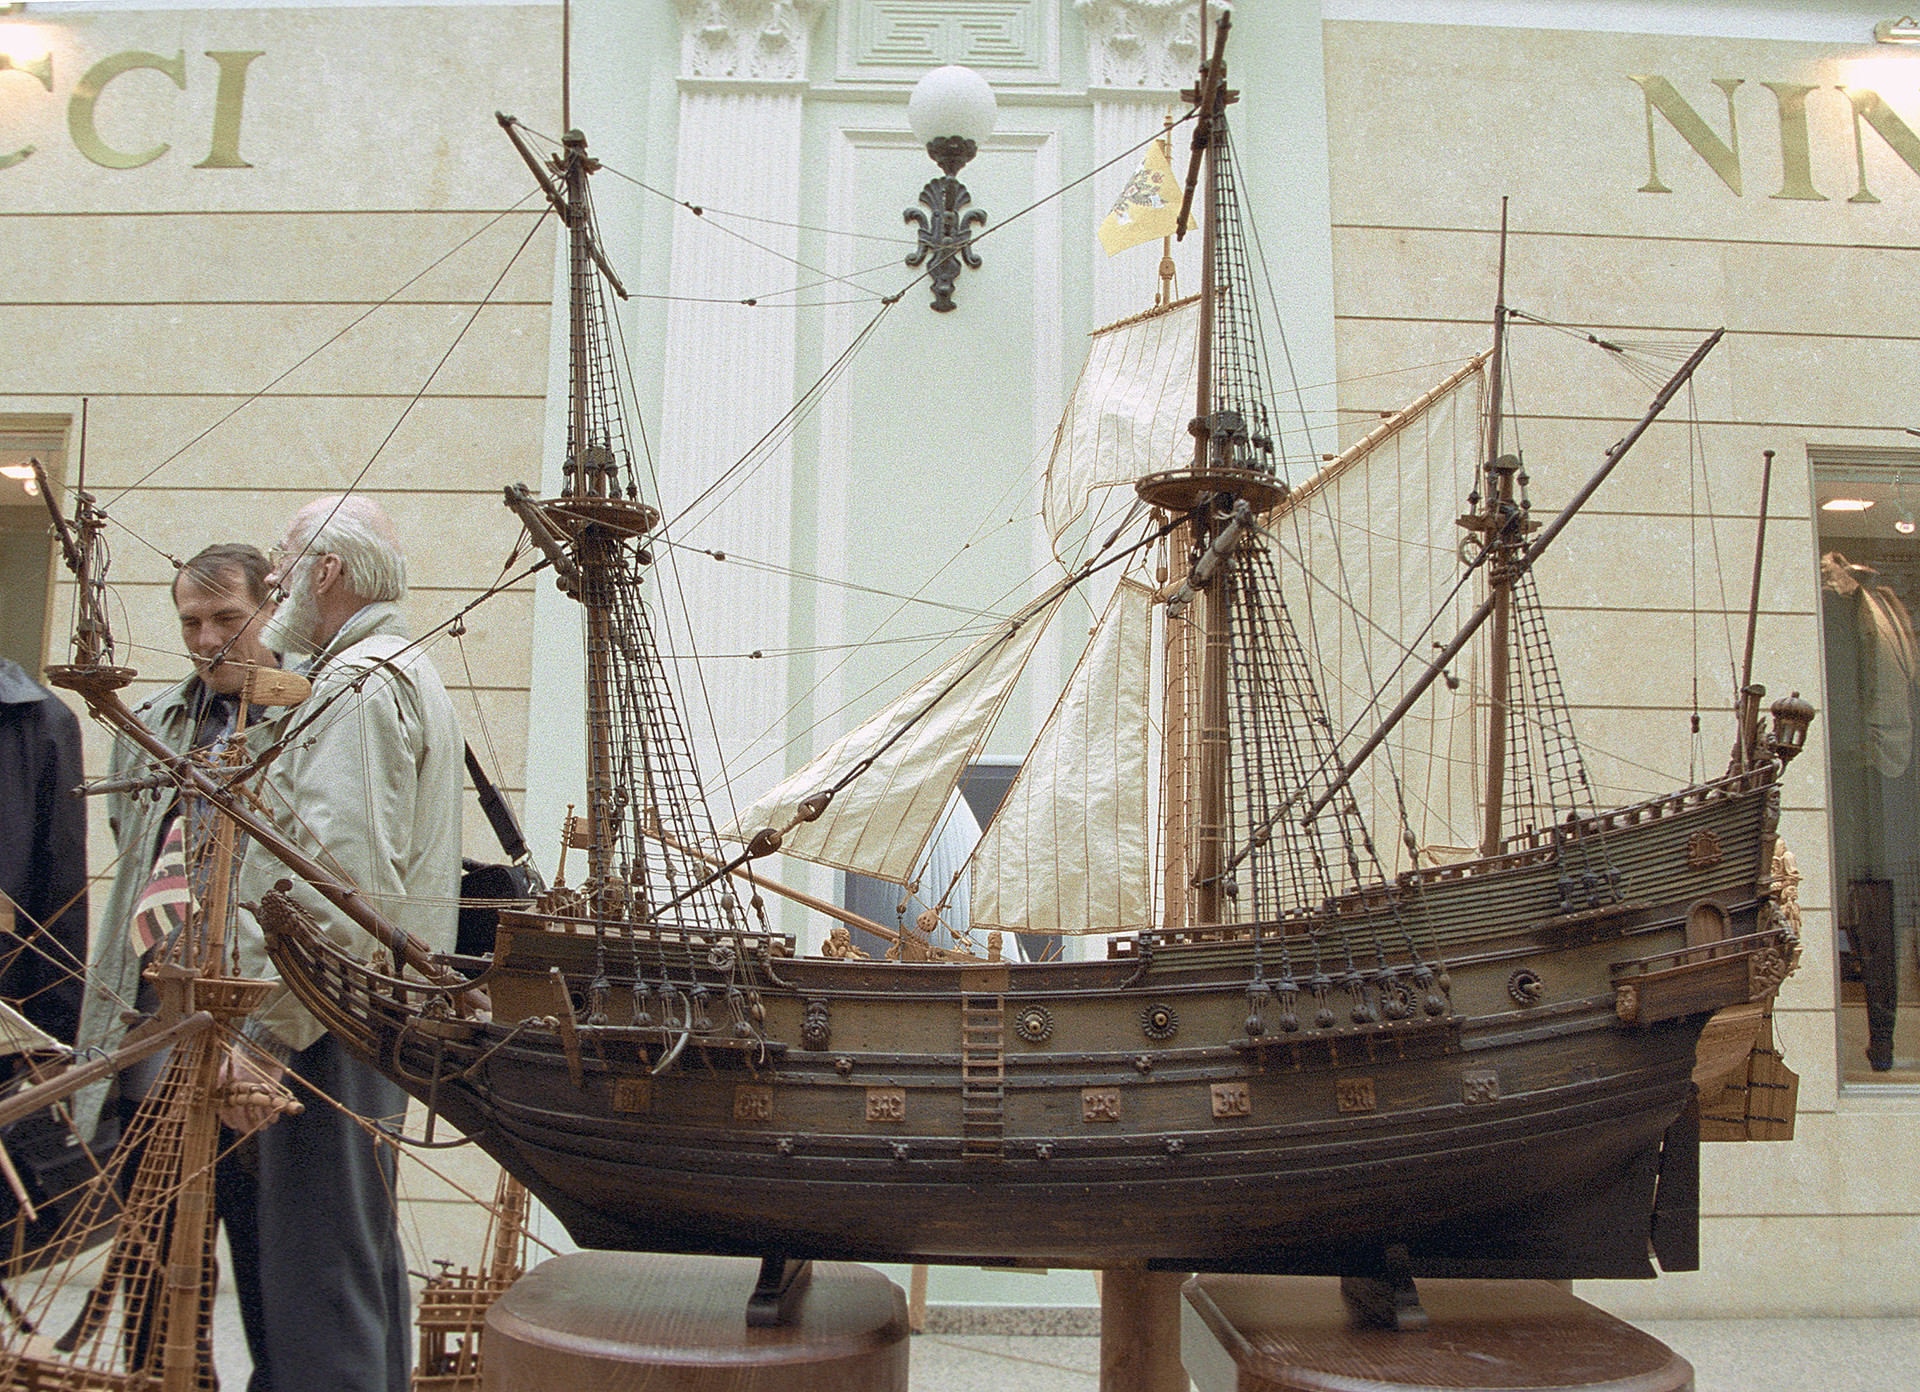 A model of the first Russian warship Oryol.